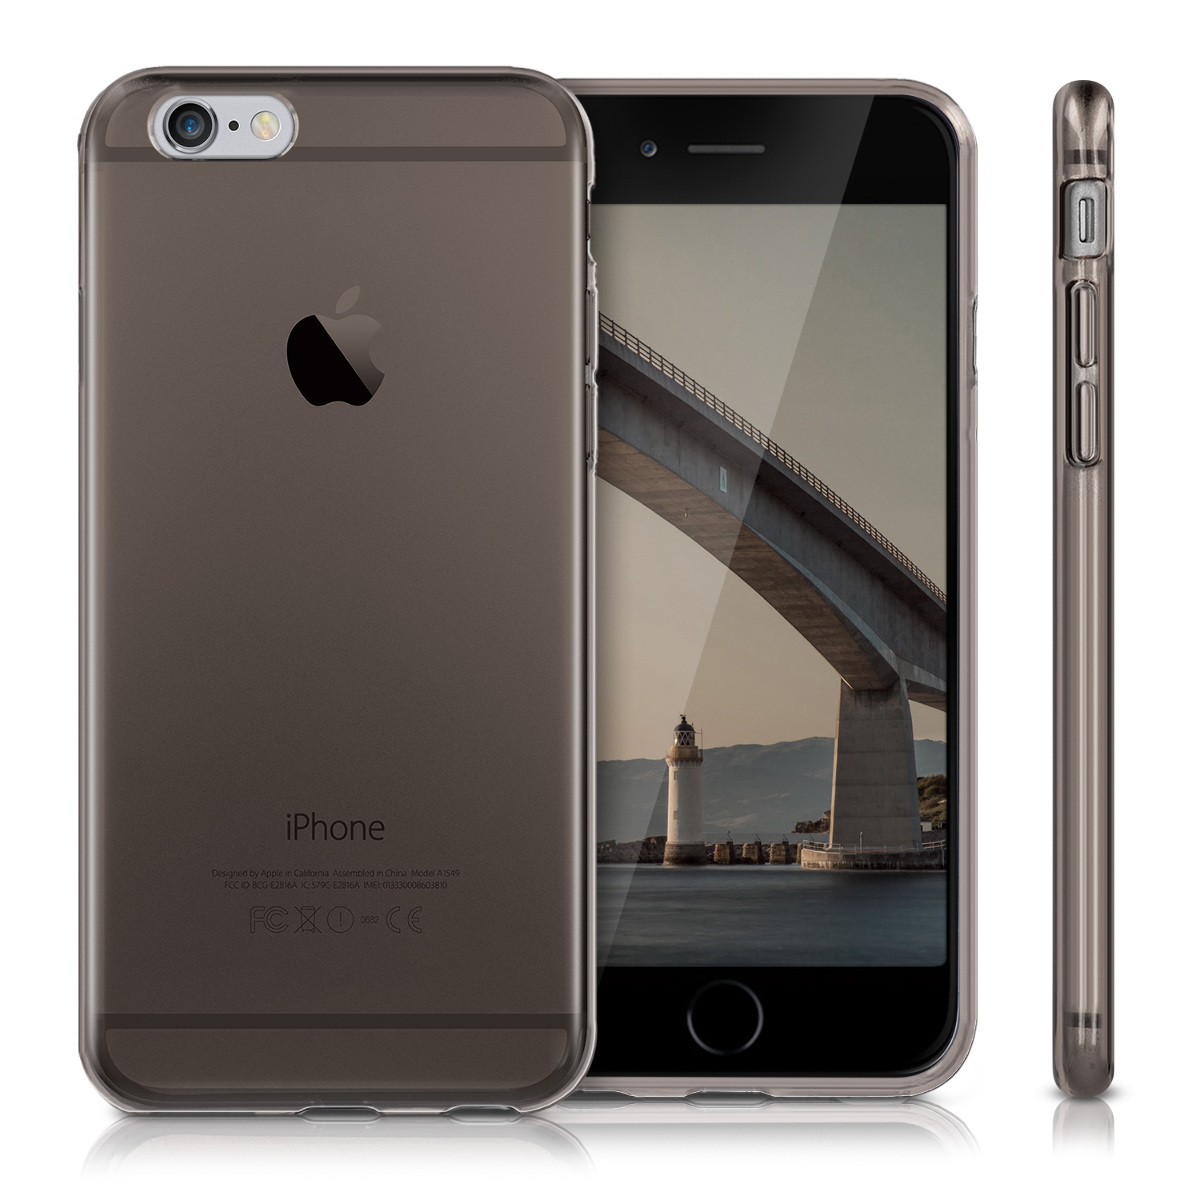 iphone 6 case apple kwmobile tpu silicone for apple iphone 6 6s 1741